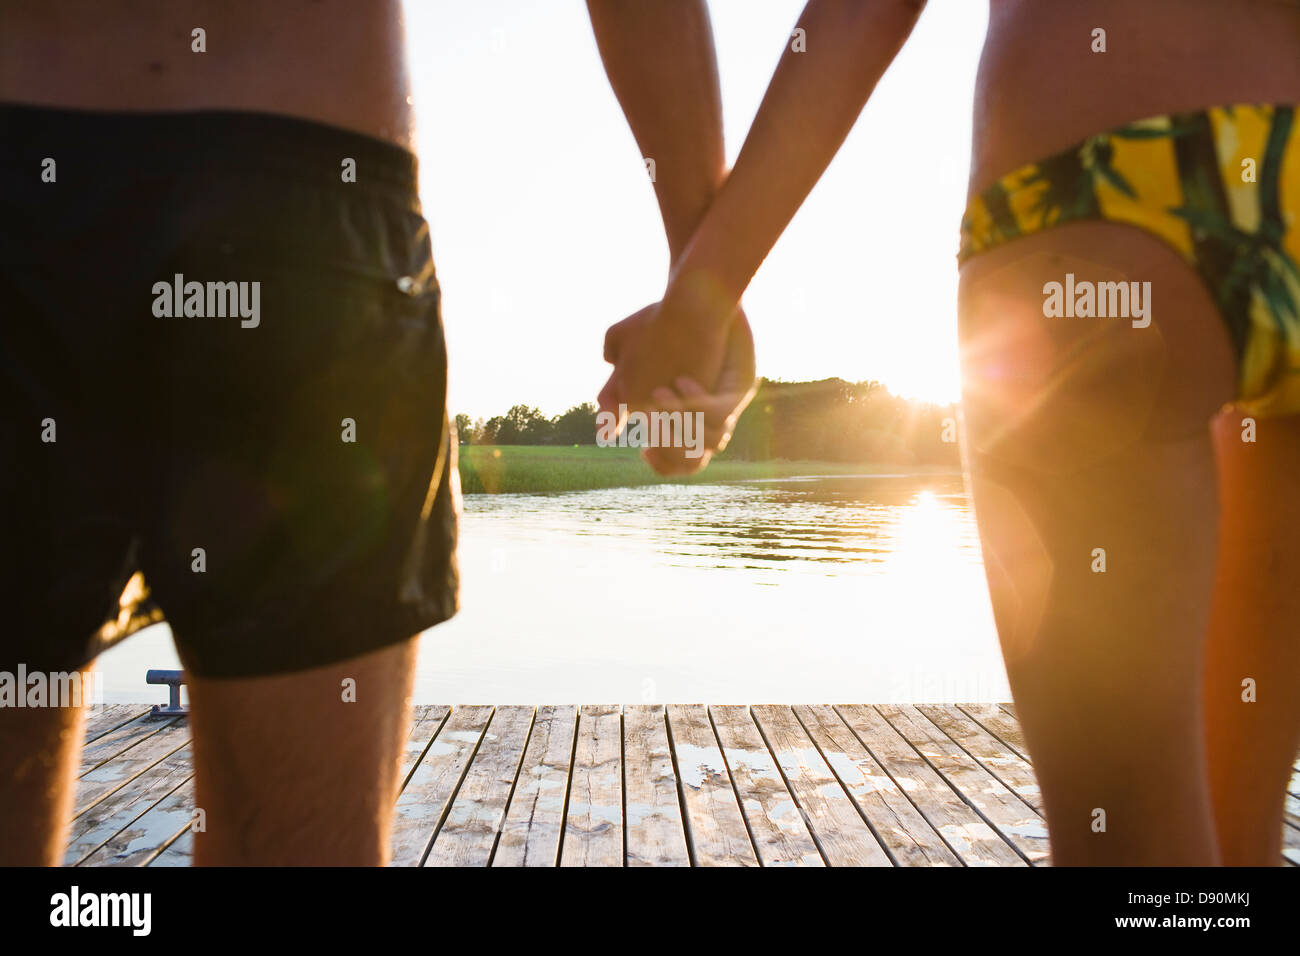 Couple holding hands on jetty Photo Stock